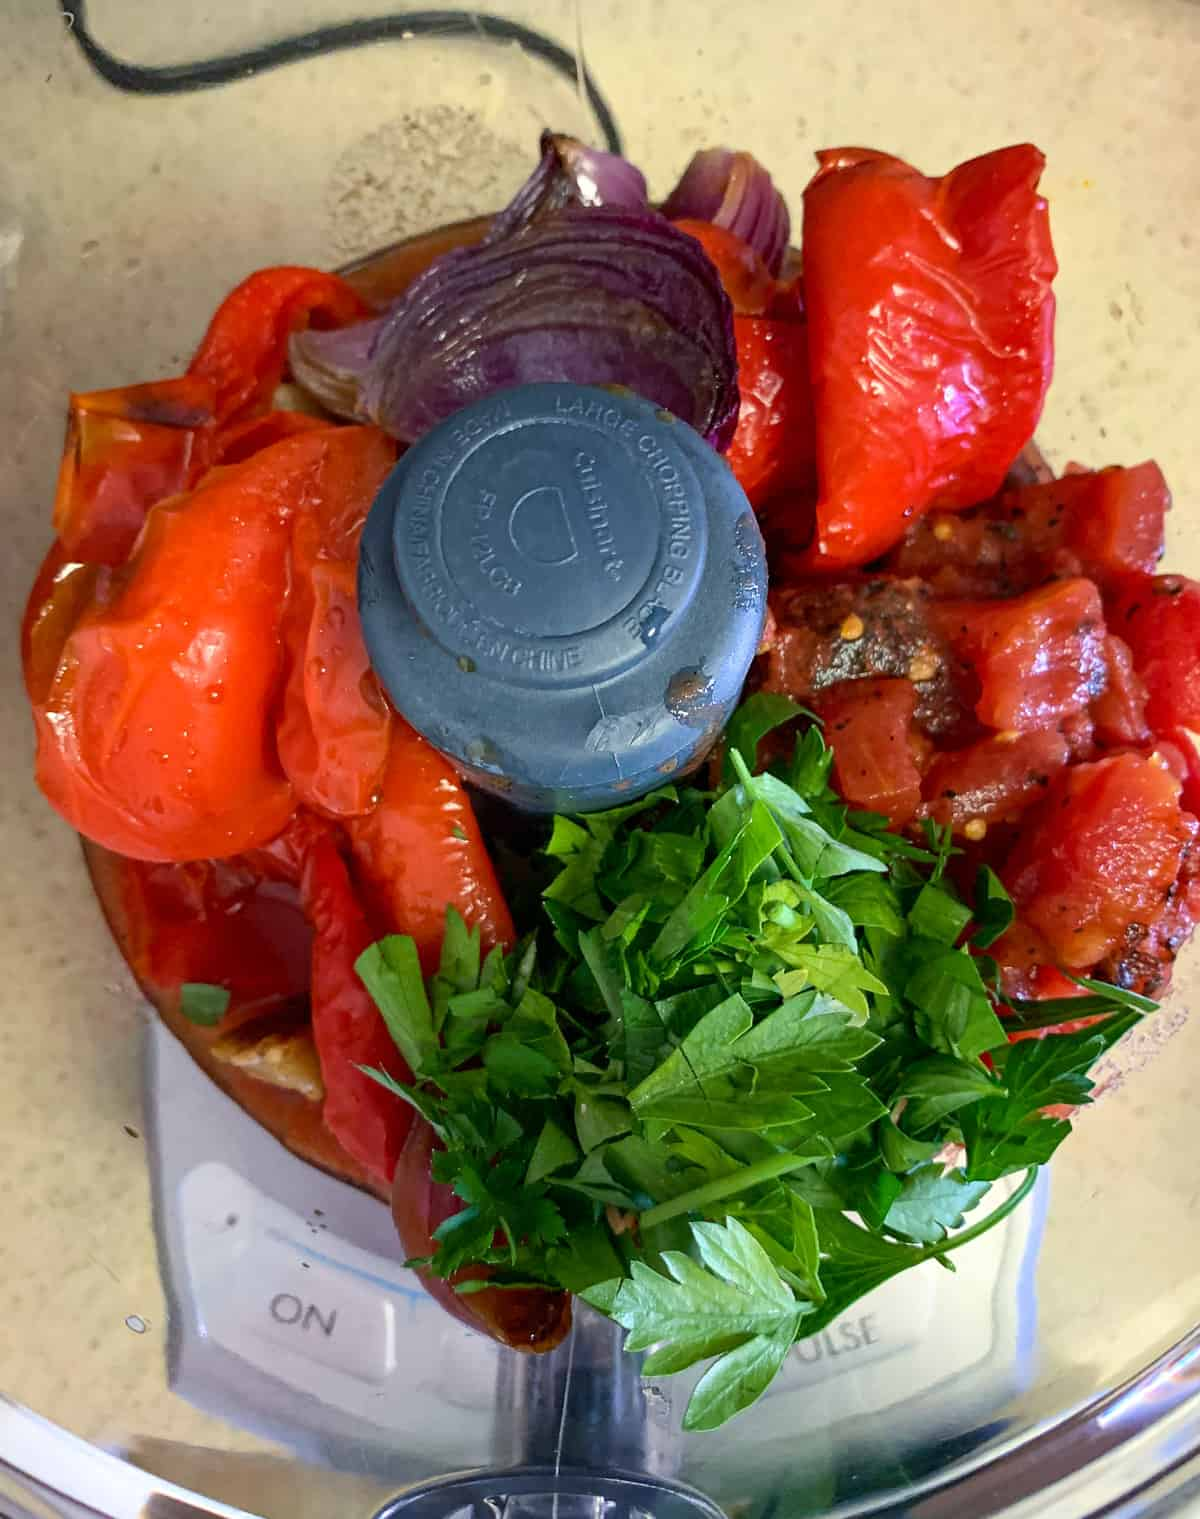 Crushing peppers , tomatoes and other ingredients for the sauce in a food processor